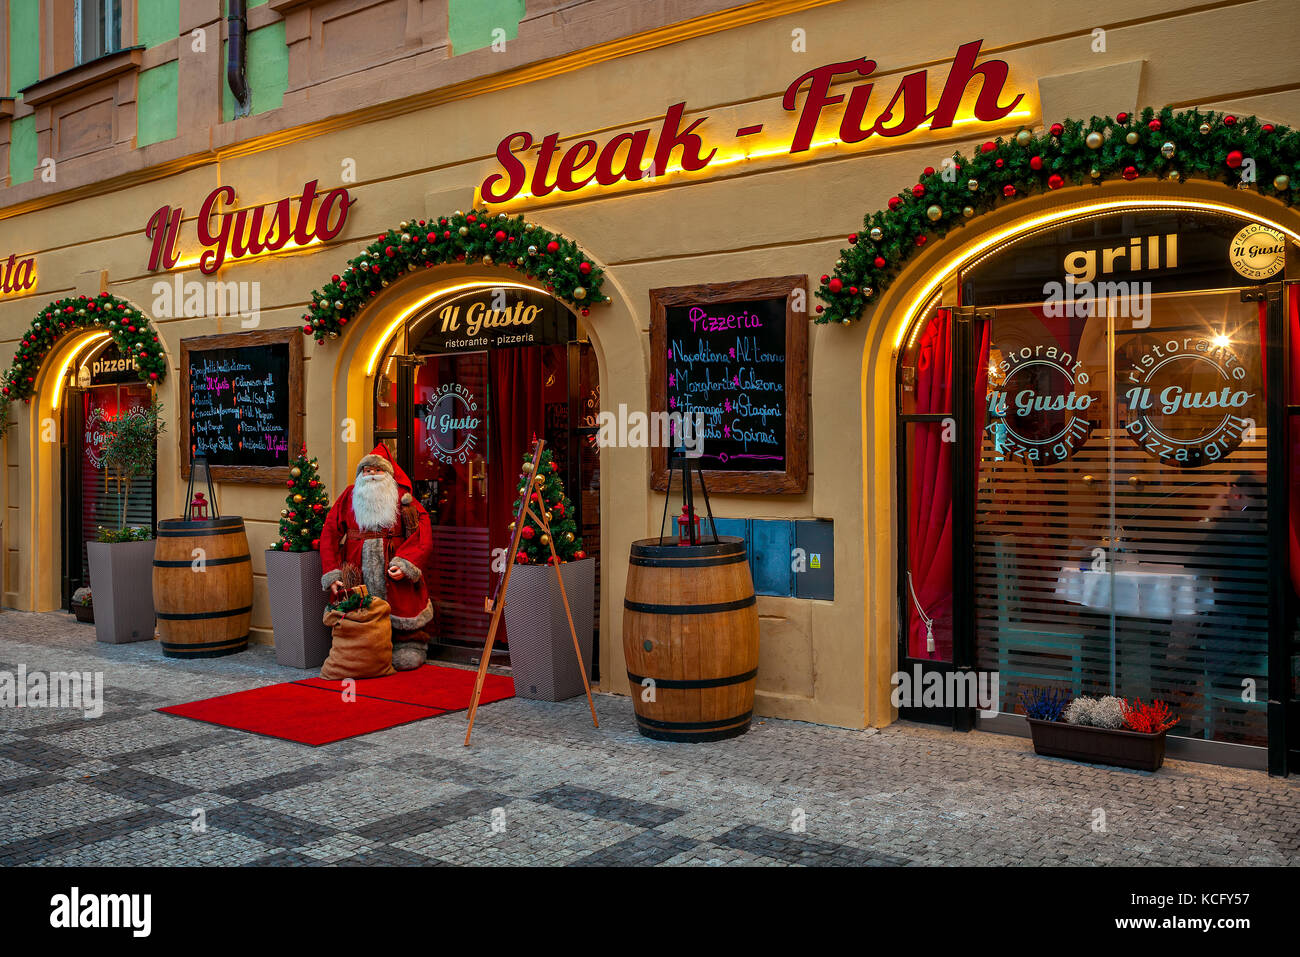 PRAGUE, CZECH REPUBLIC - DECEMBER 10, 2016: Decorative Santa Clause at the entrance to Christmas decorated restaurant - Stock Image